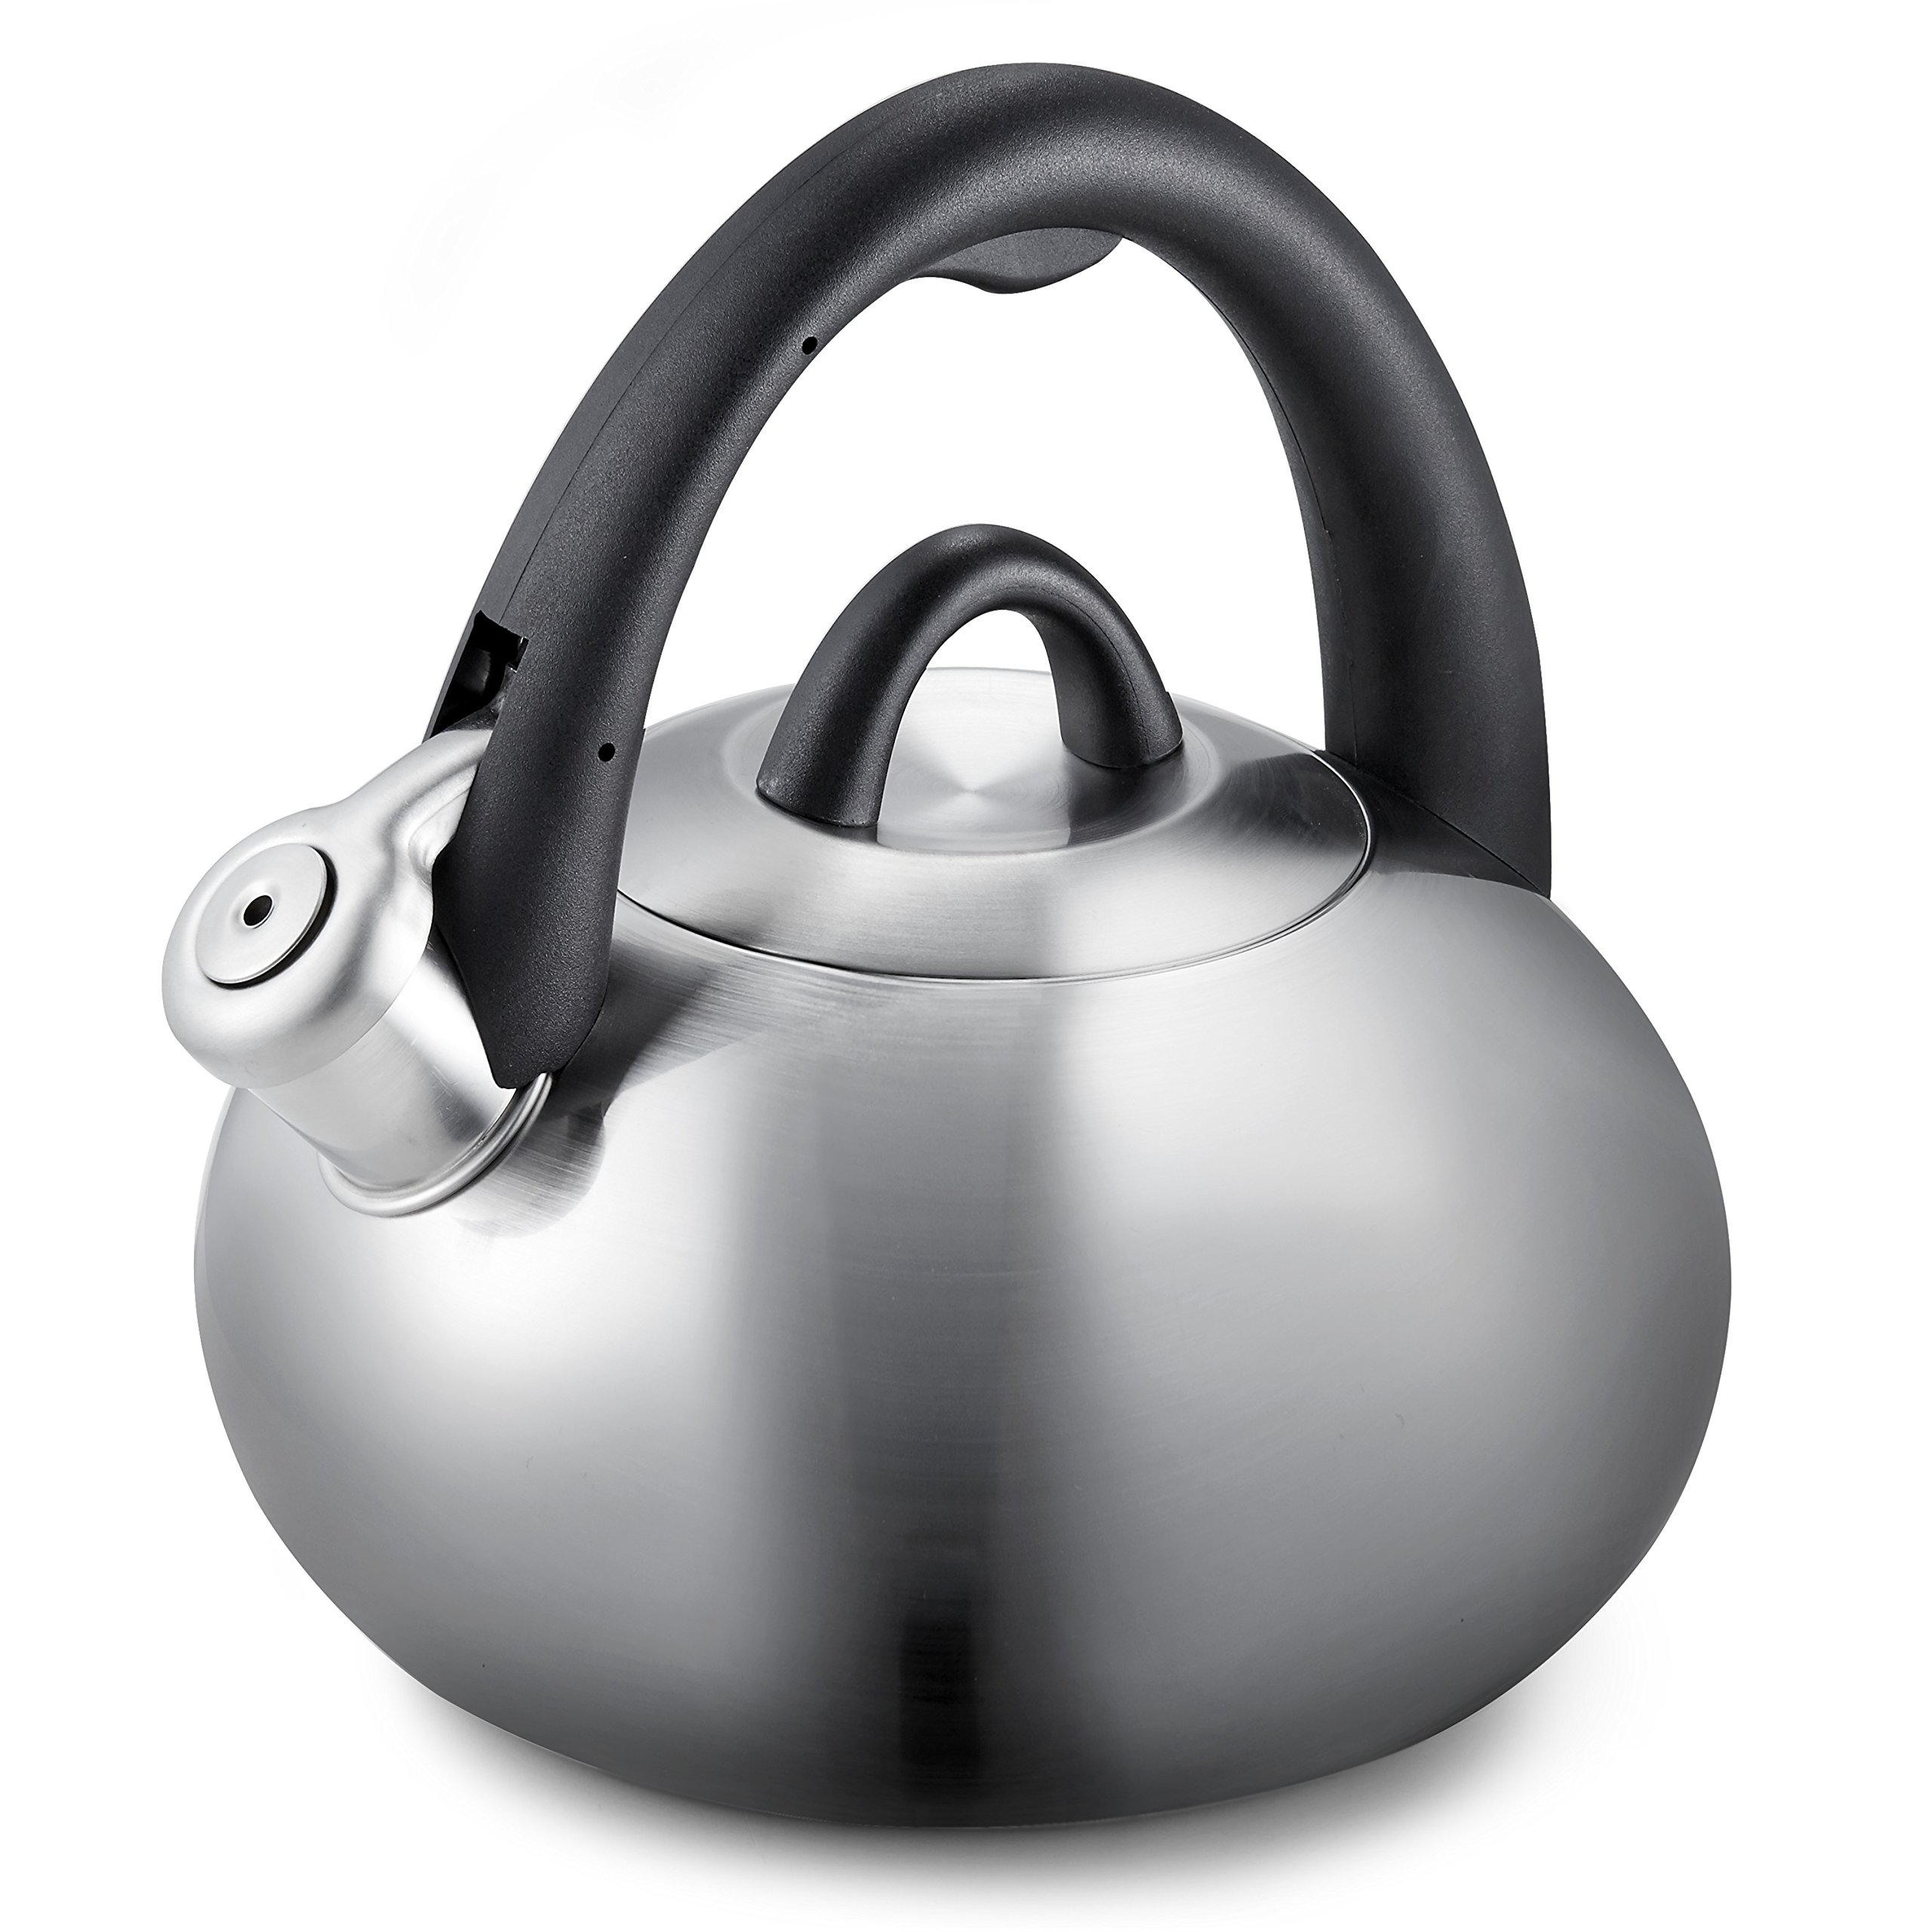 Calphalon 2-Quart Stainless Steel Tea Kettle with Whistle by Calphalon